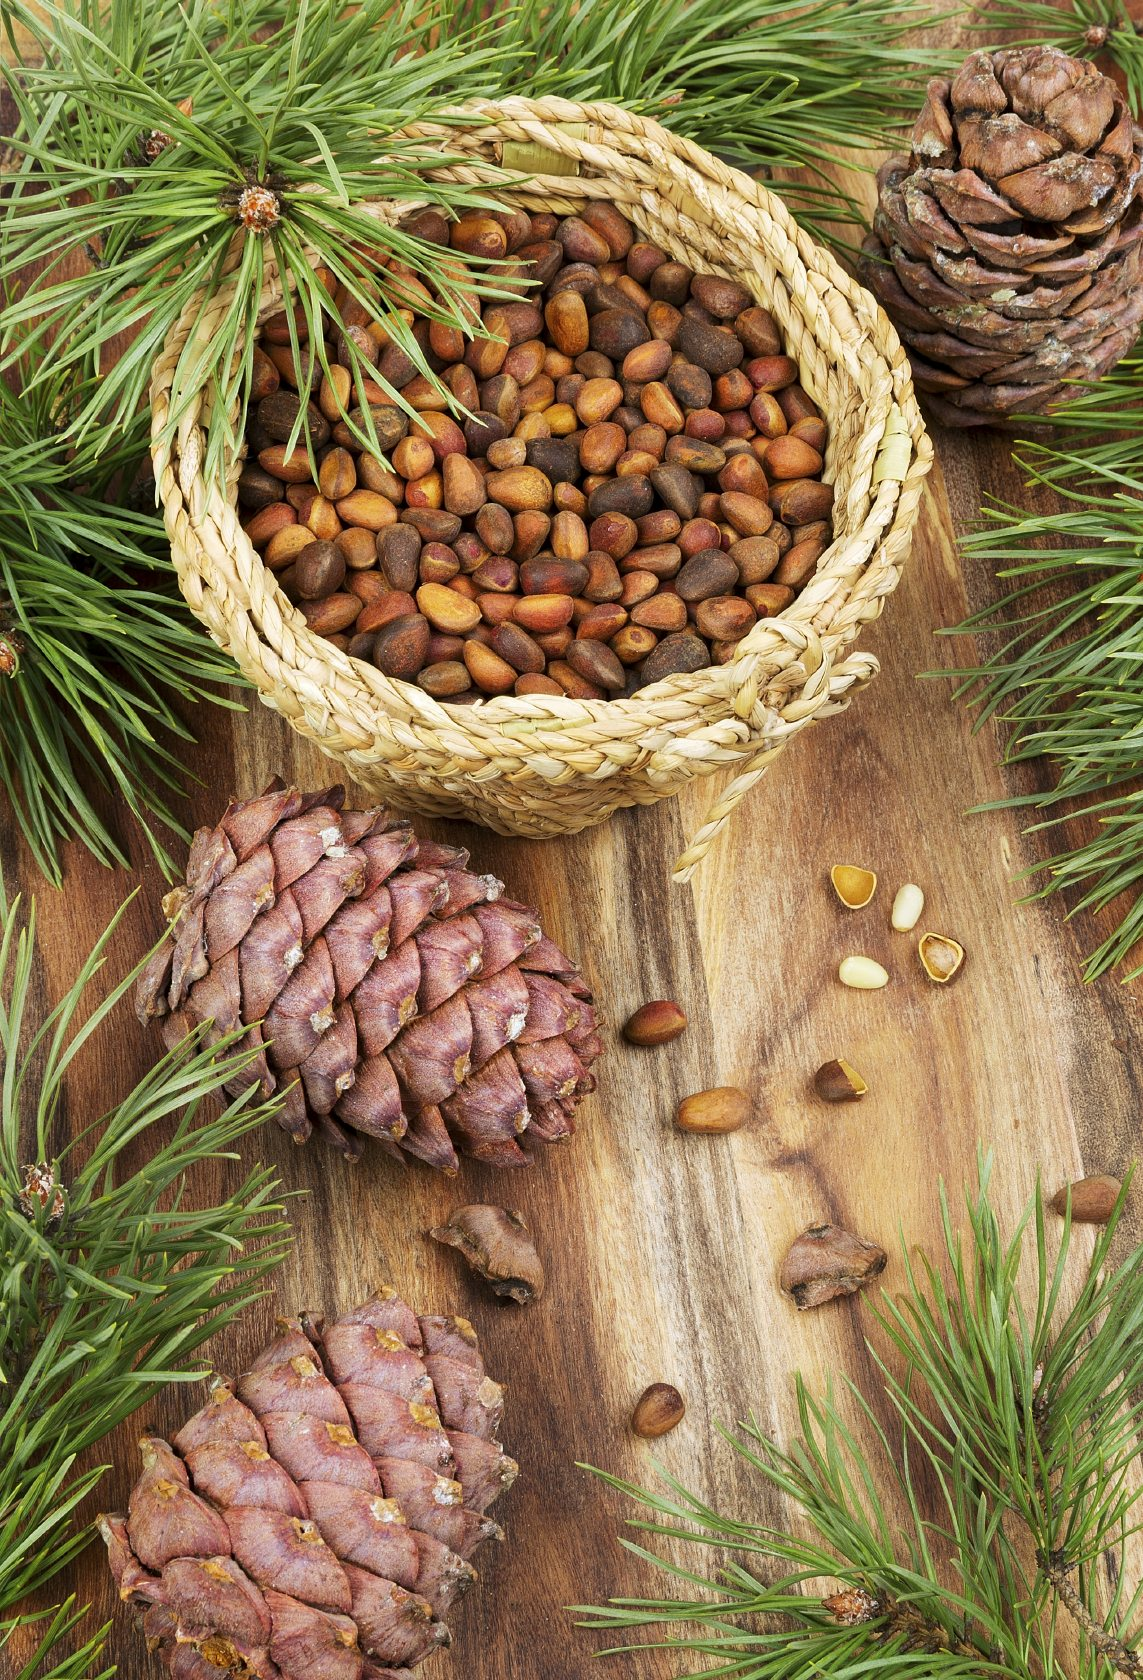 Where Do Pine Nuts Come From: Harvesting Pine Nuts From